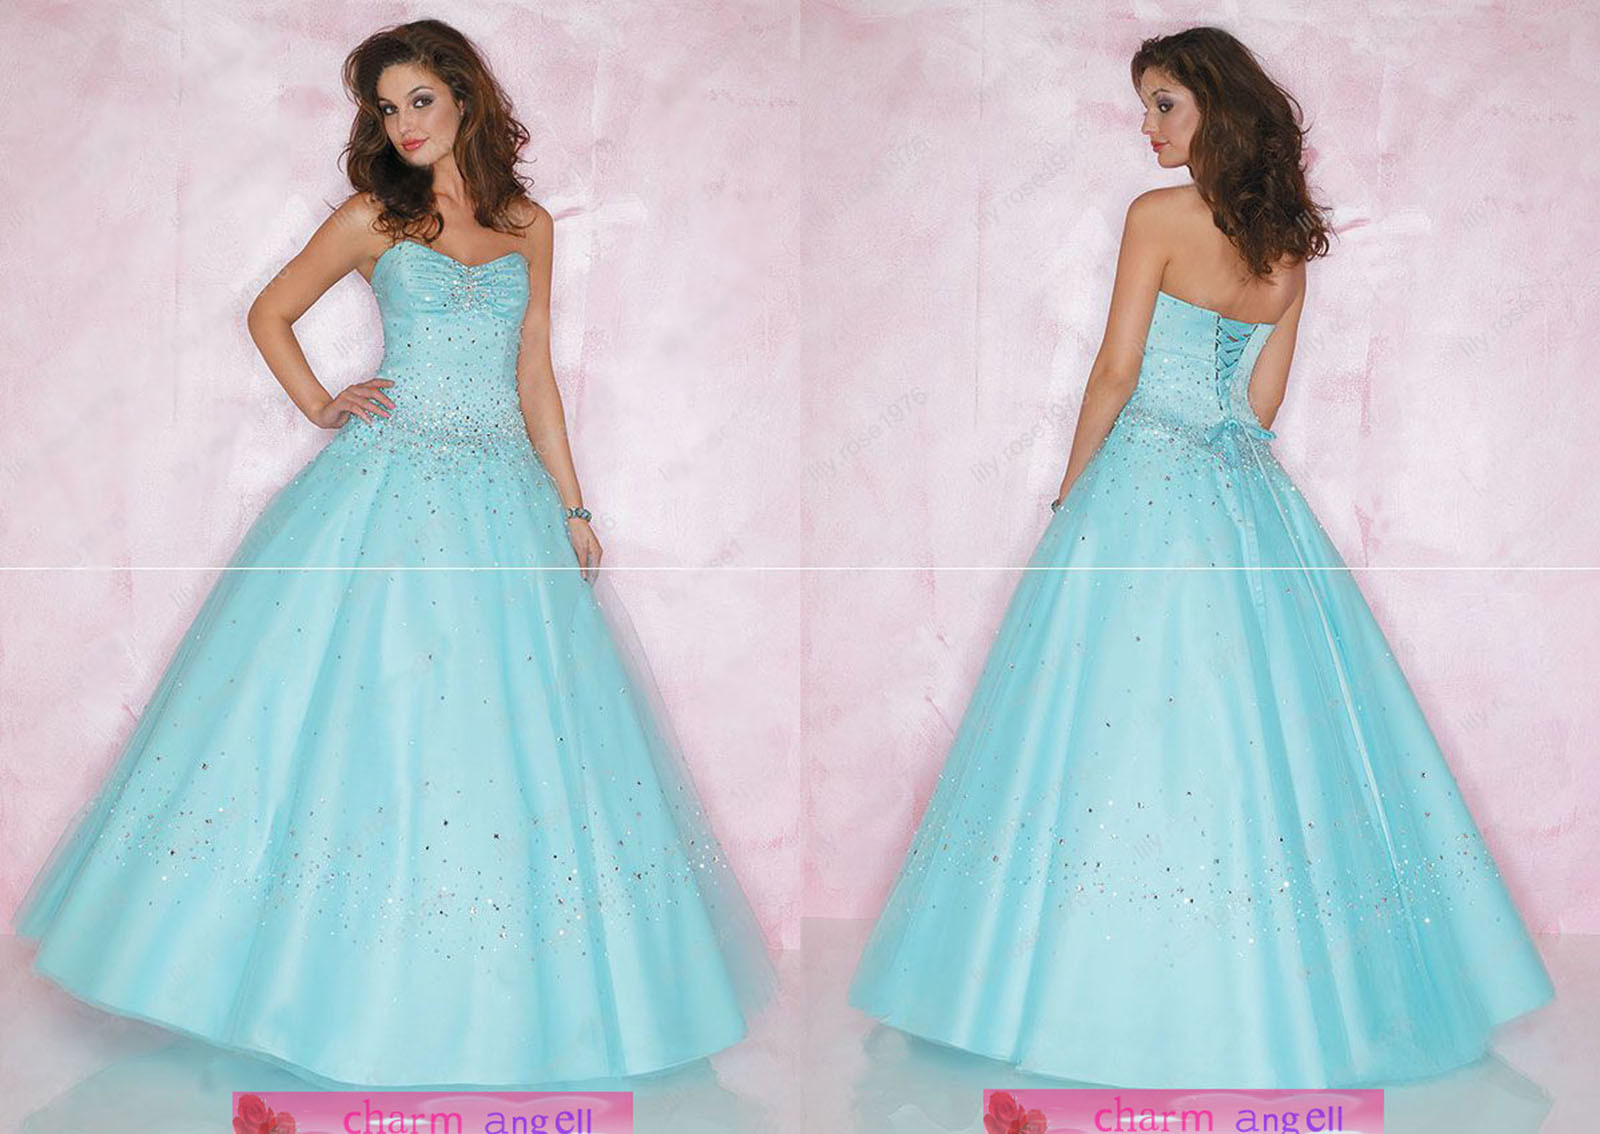 Prom dress style and colour help yahoo answers for Blue green wedding dress